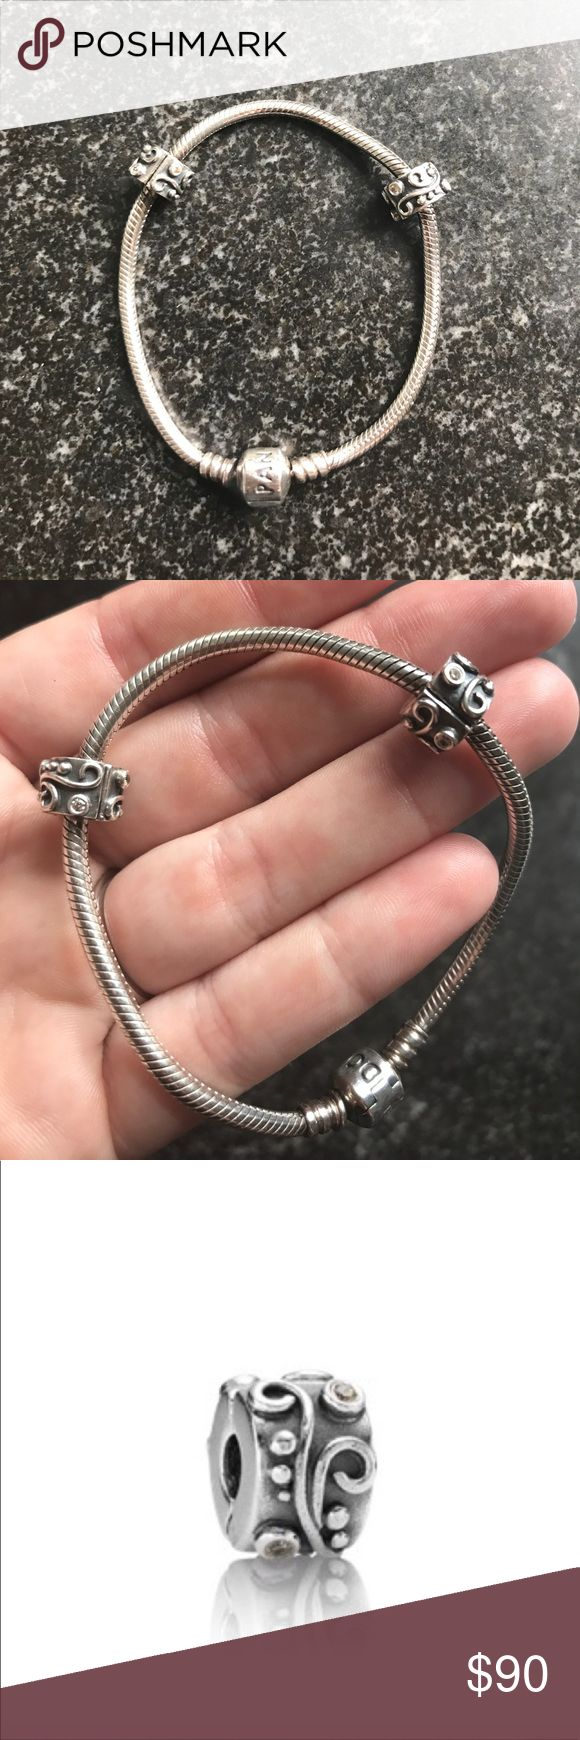 PANDORA BRACELET WITH TWO SPACERS SIZE 7.5 19CM Selling this Pandora bracelet with two spacers. Spacers with crystal detail are discontinued and each retailed for $40. Bracelet is size 7.5 or 19cm and the retail price on that was $65. Item was cleaned professionally at the Pandora store on 6/9/2017. Pandora Jewelry Bracelets